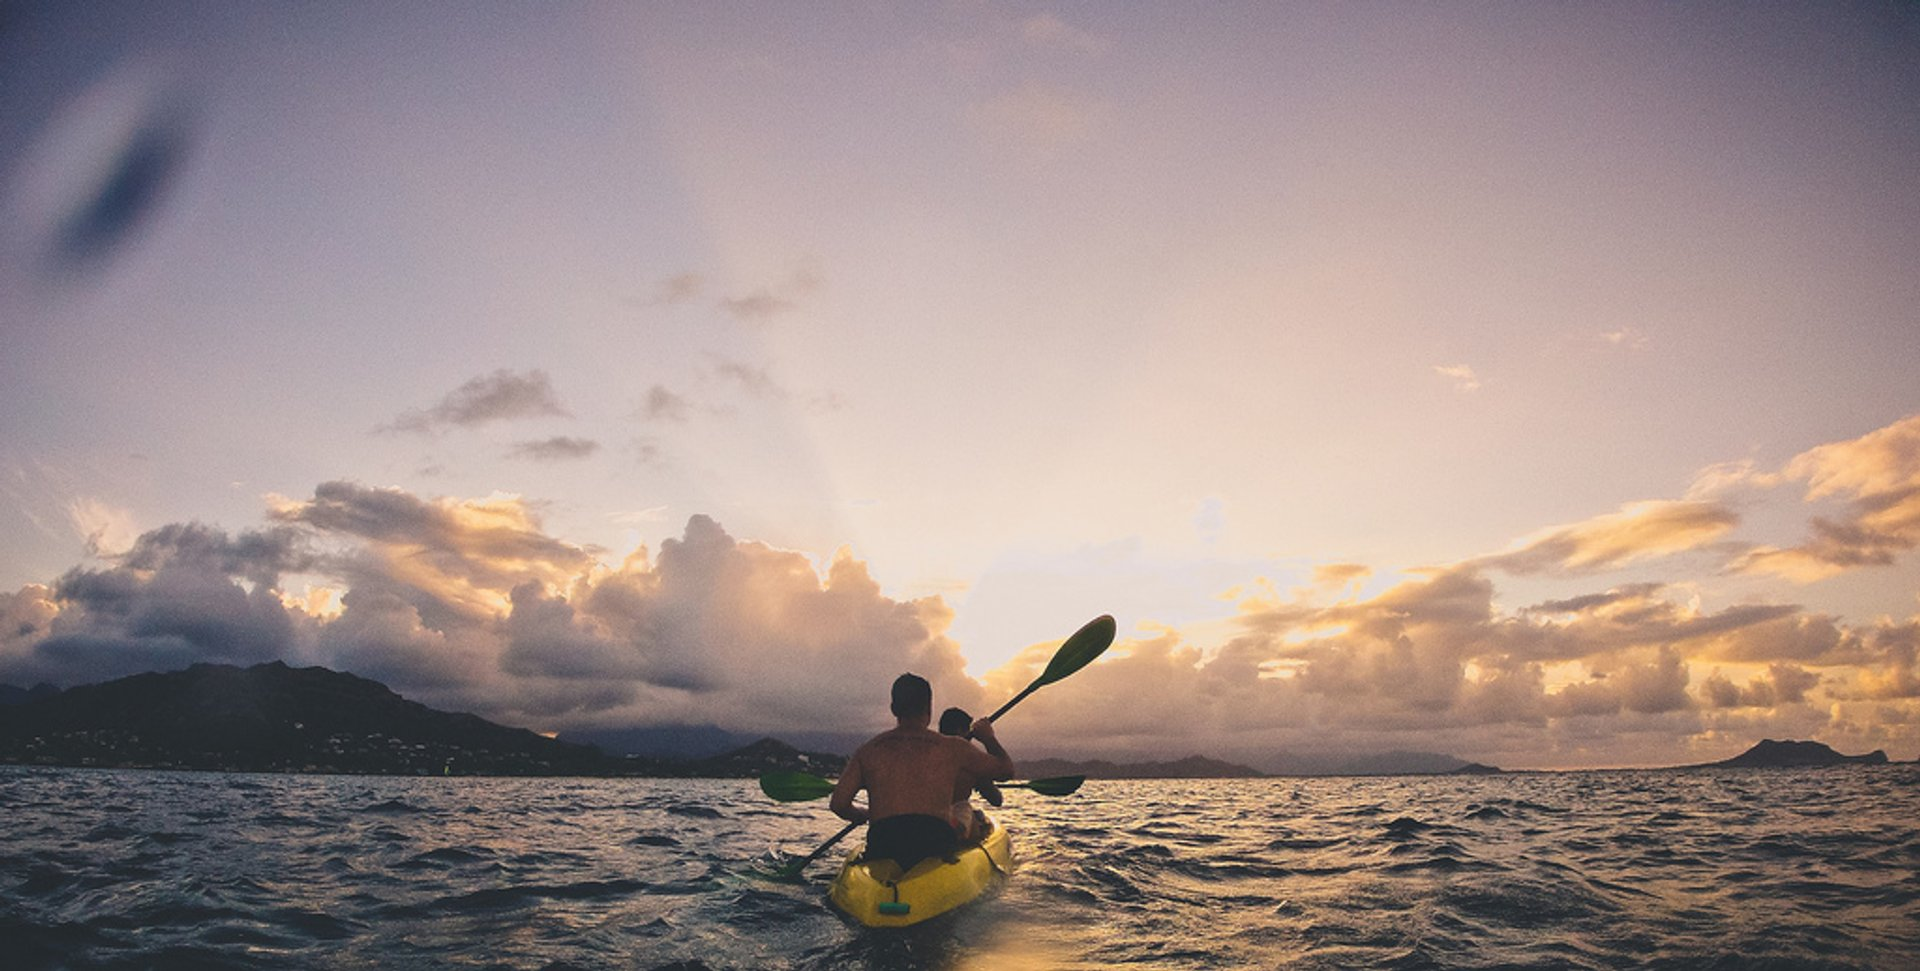 Kayaking and Canoeing in Hawaii - Best Season 2020